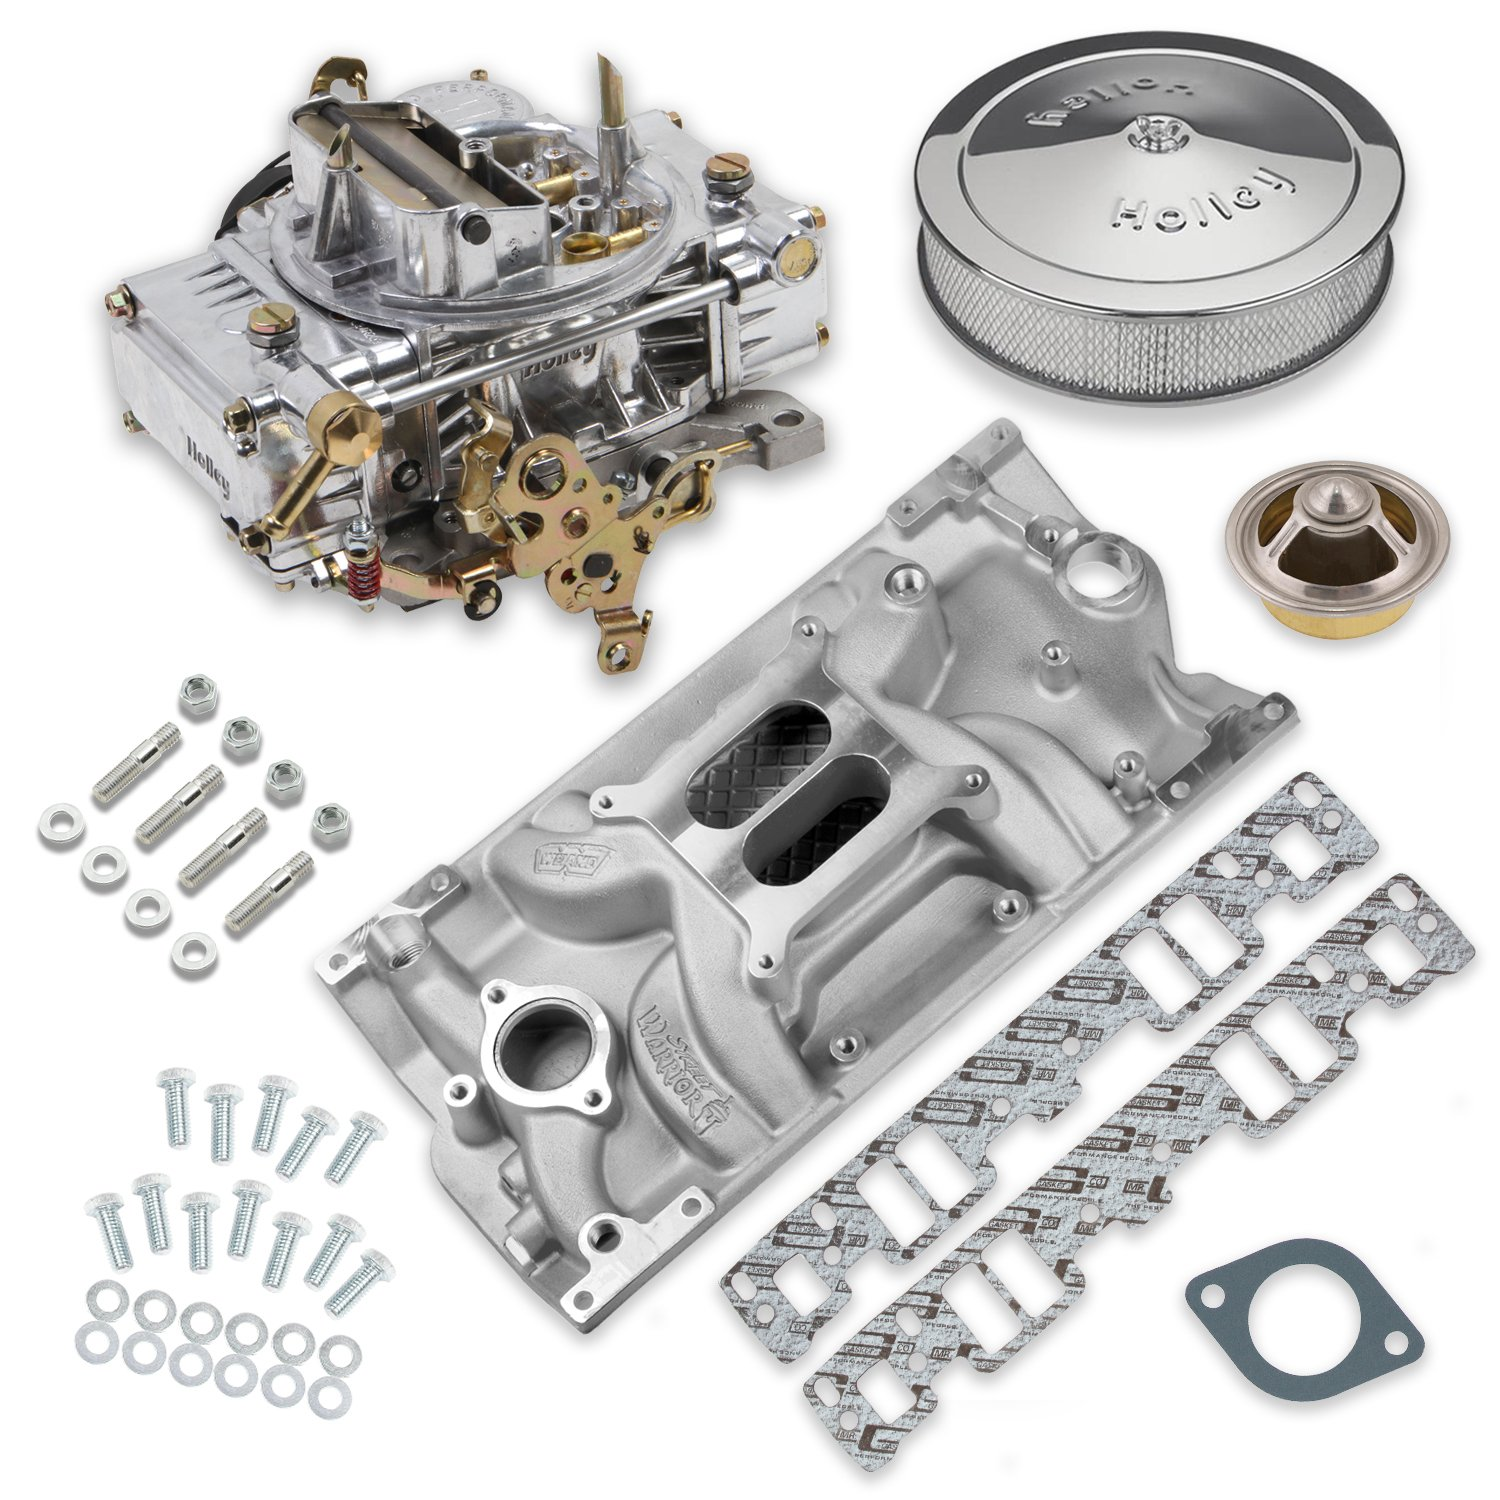 Holley VK060033 600 CFM 0-80457SA Carburetor And Small